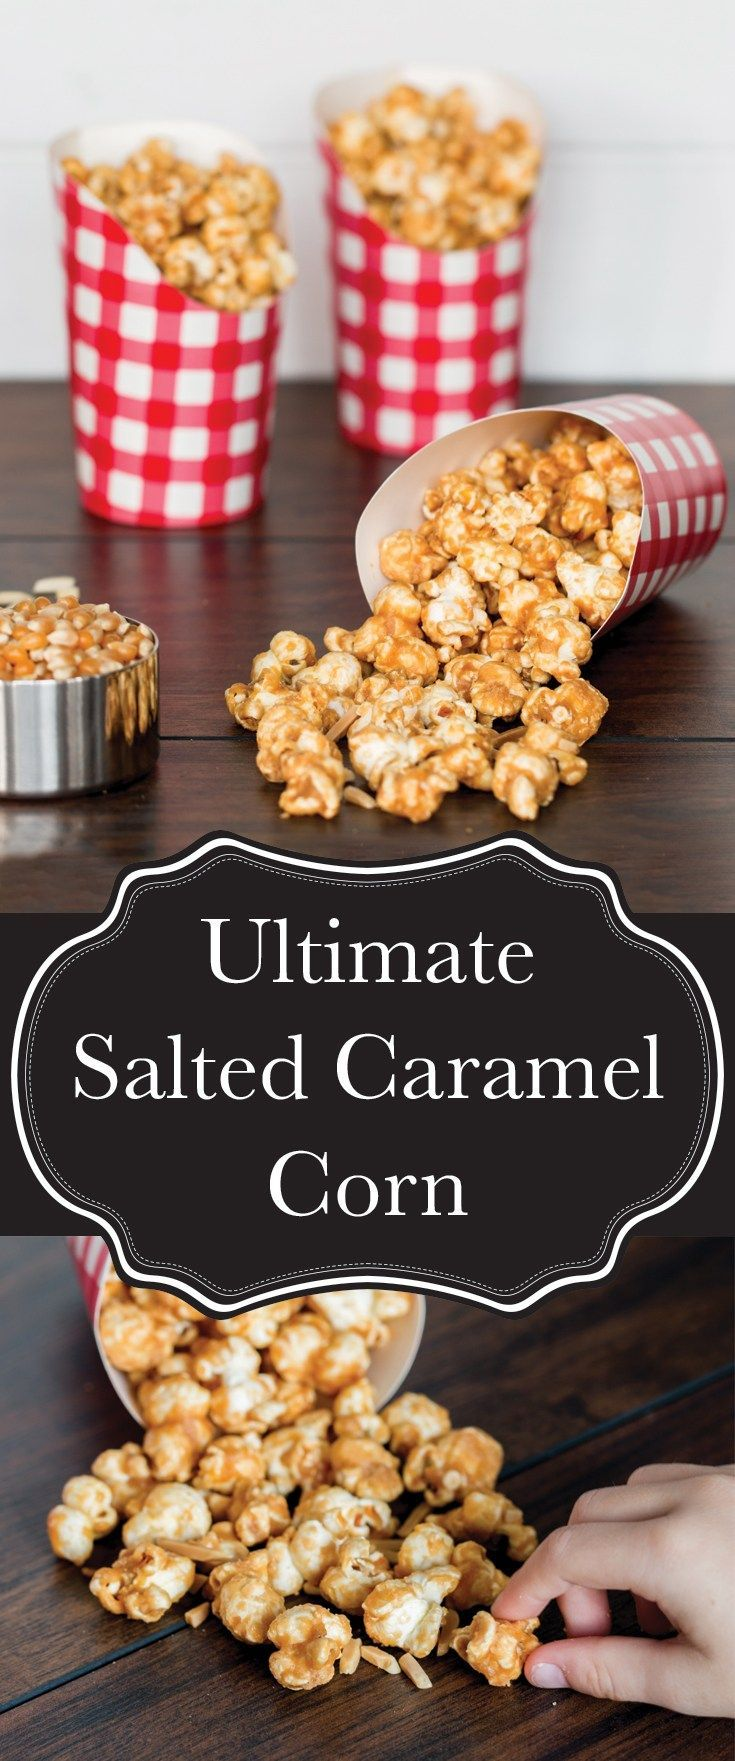 My ultimate caramel corn recipe is exactly what you need to put your family game or movie night over the top! #BornOnTheFarm